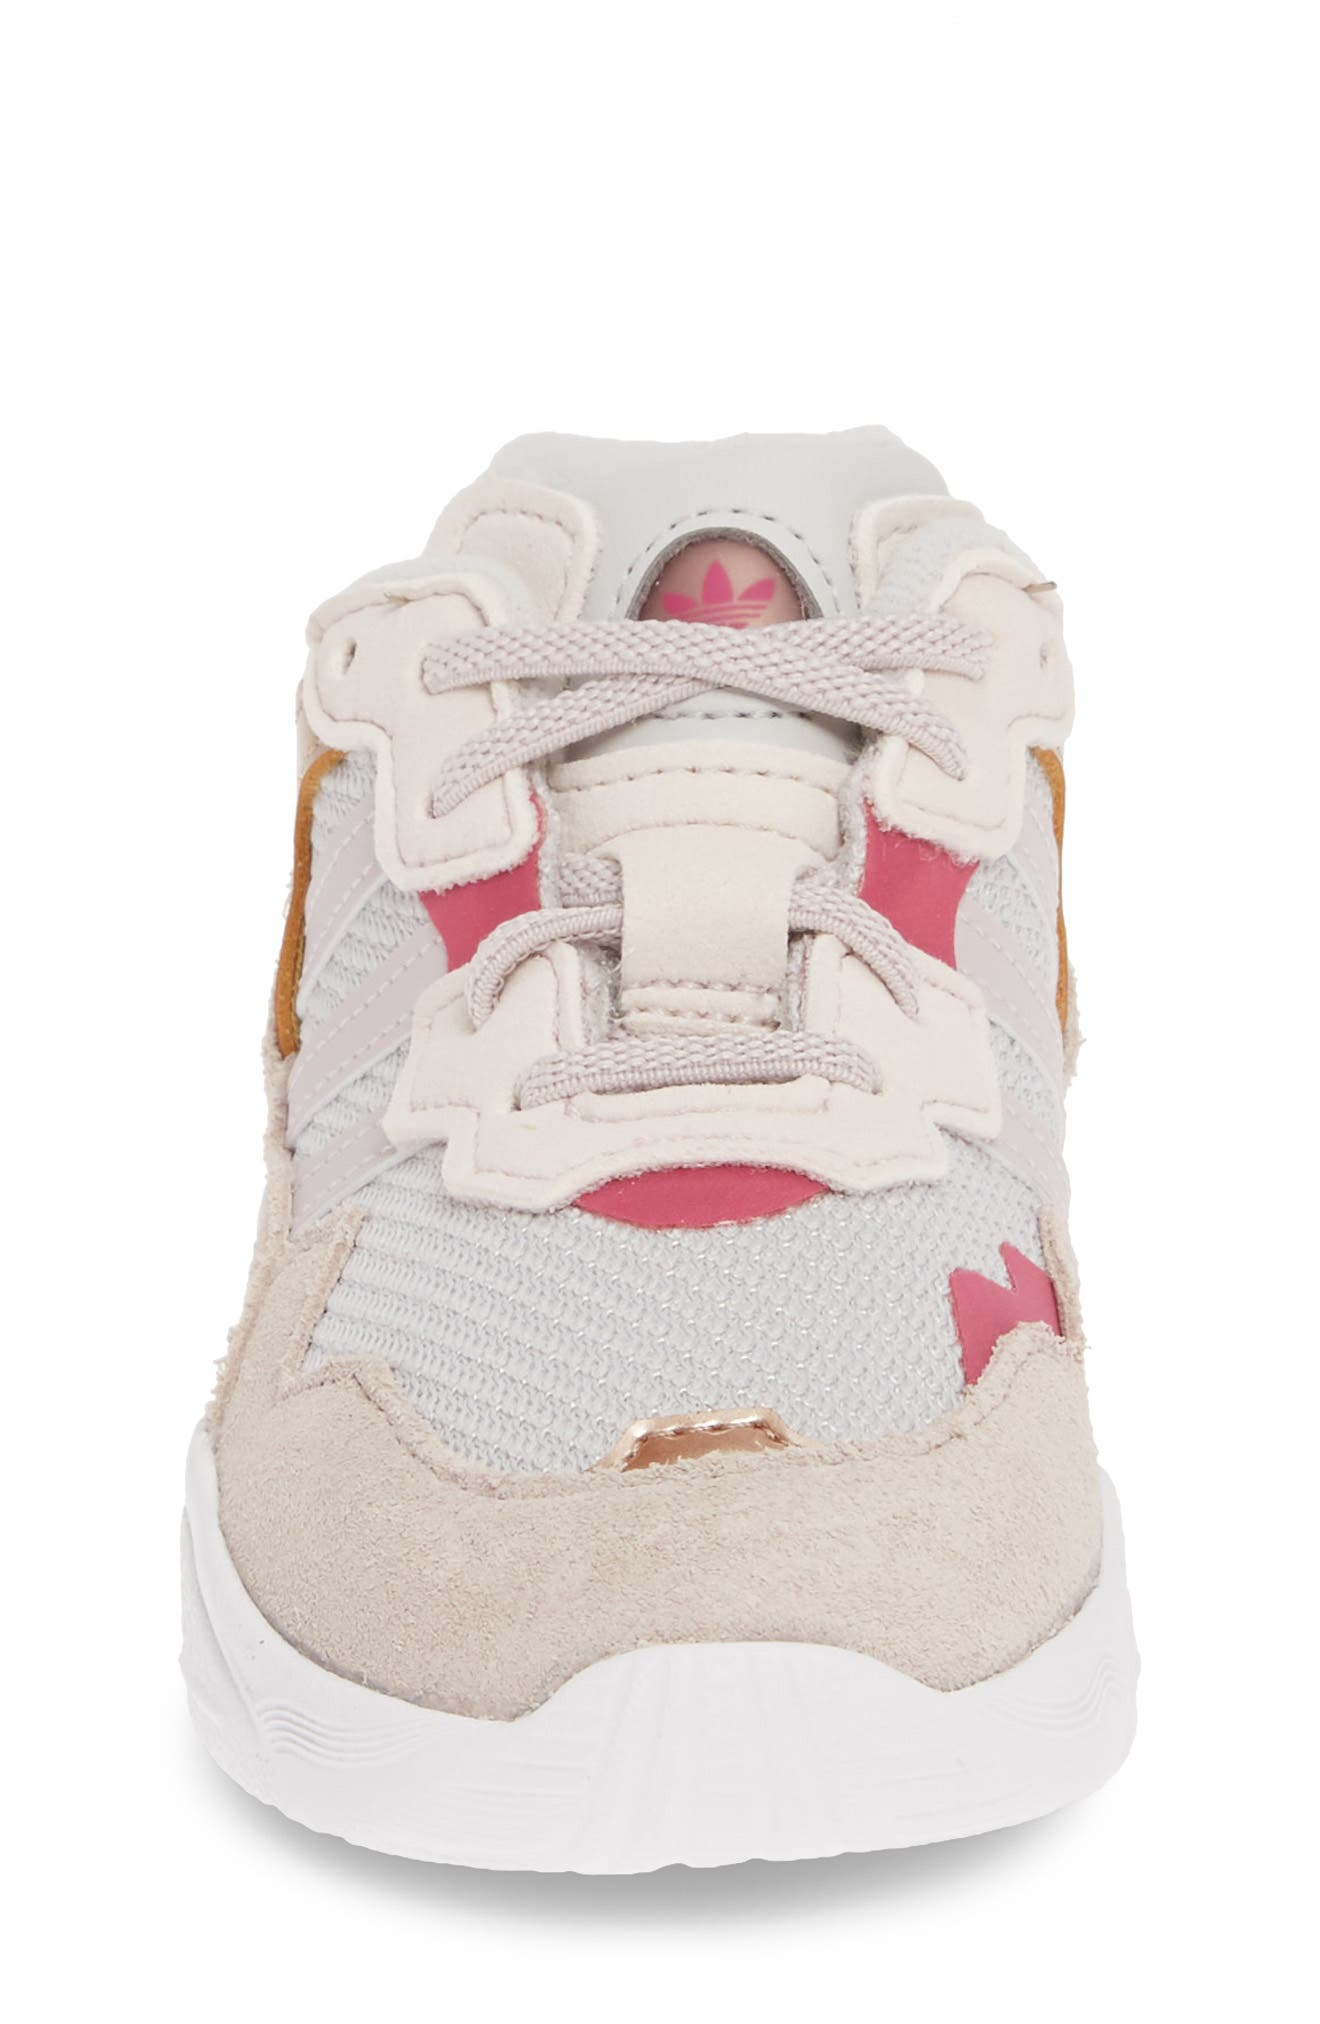 Yung-96 Sneaker,                             Alternate thumbnail 4, color,                             GREY TWO/ ORCHID/ TRUE PINK